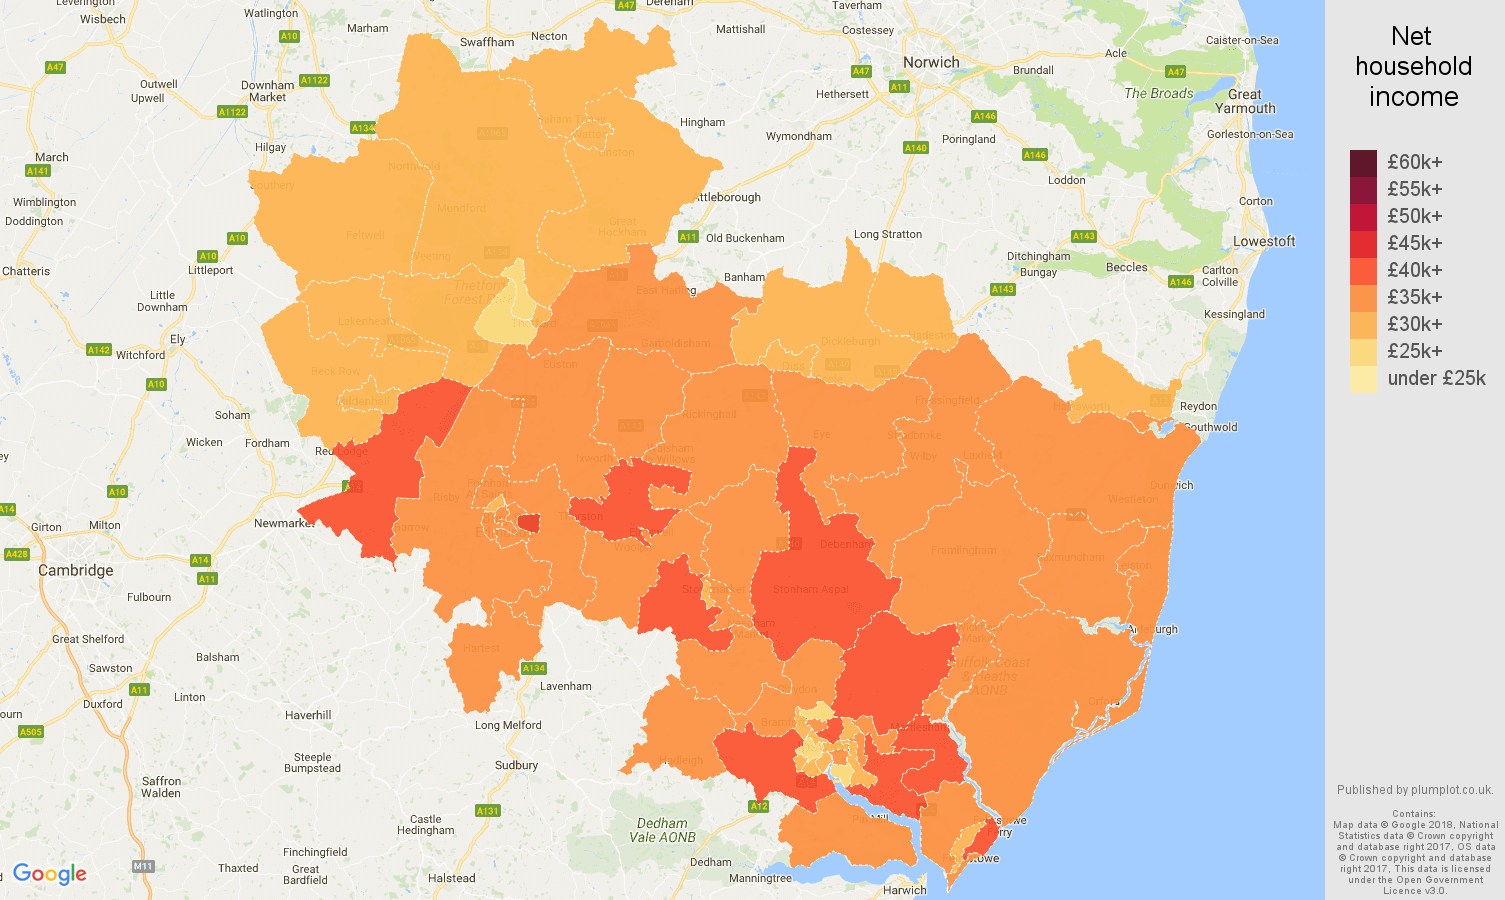 Ipswich net household income map